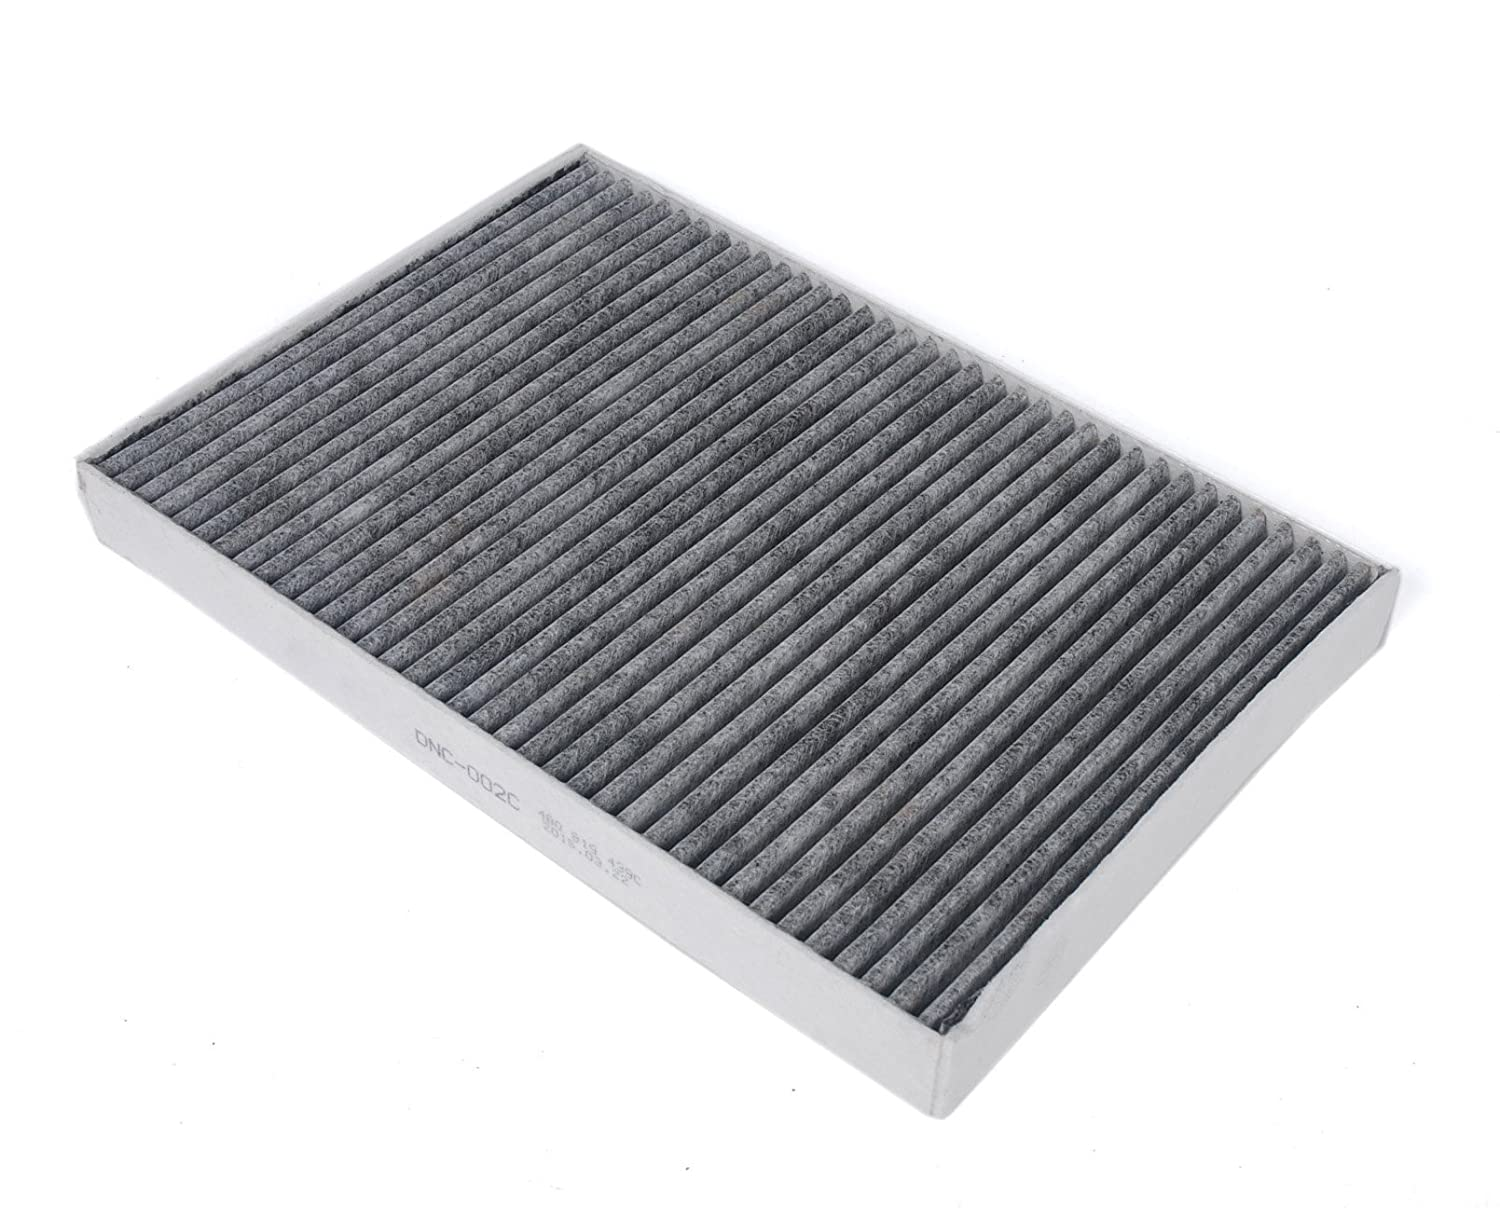 2001-2004 2002-2003 HIFROM Activated Carbon Cabin Air Filter Replacement Part# 8E0819439 4B0819439C CUK3037 for Audi: A4 ; S4 2004-2009 ; S6 ; Allroad 2002-2009 ; A6 2001-2005